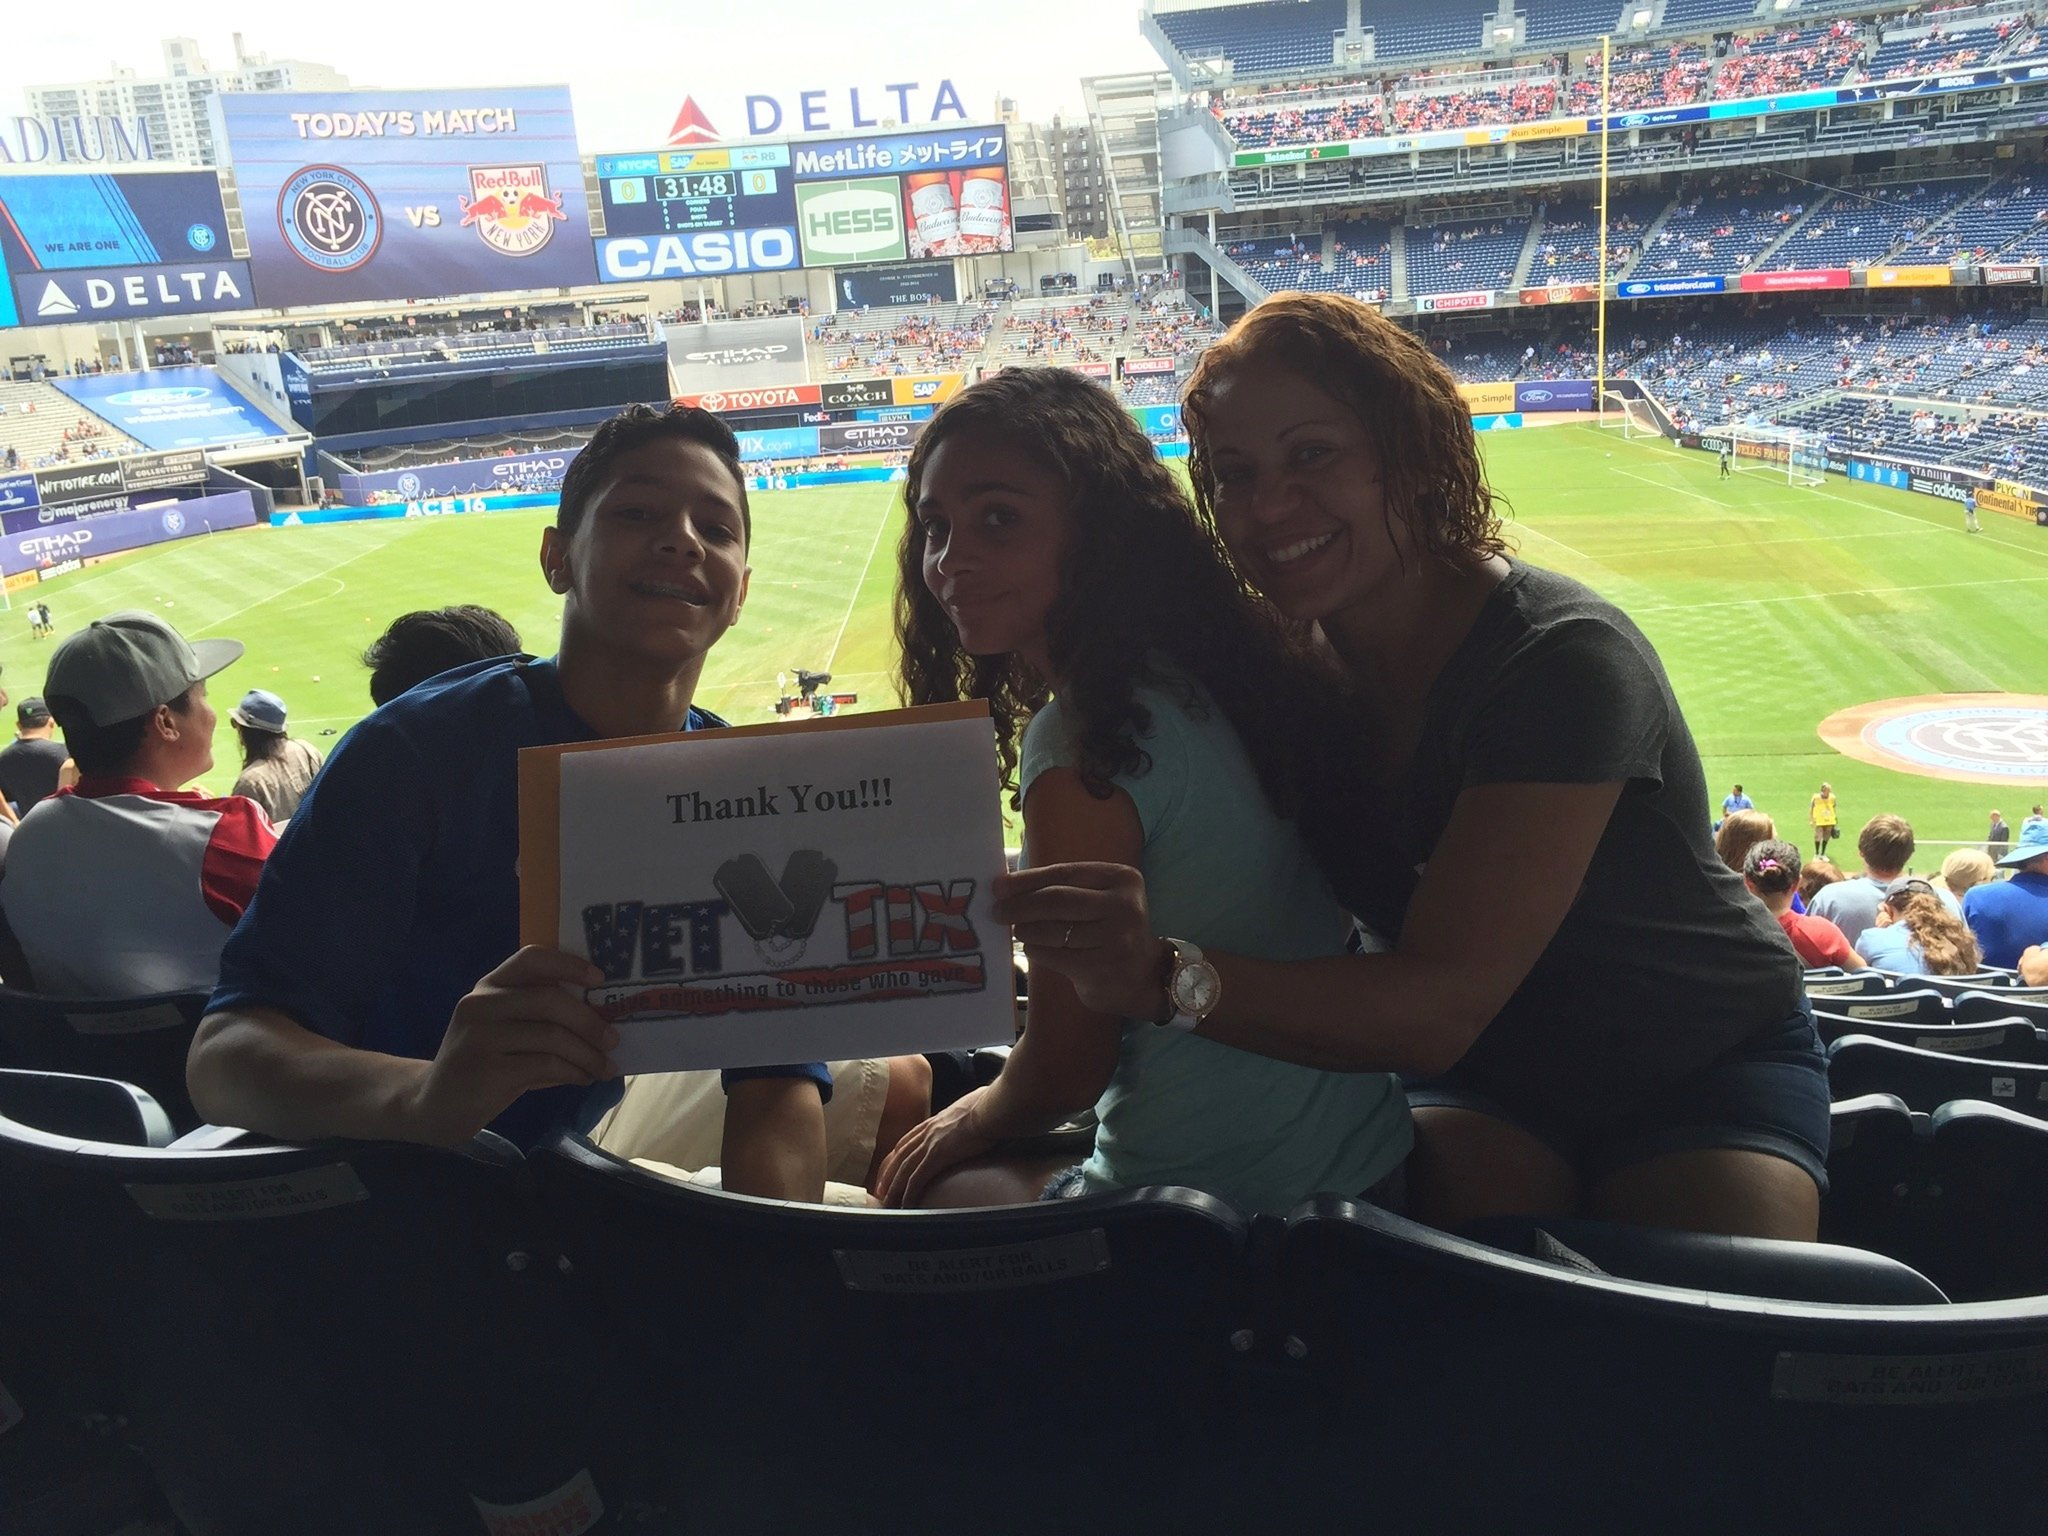 """"""" Thank you so much for these tickets on an amazing 4th of July Weekend. We appreciate the donation so much. The game was amazing and NYCFC won 2-0. A big thanks from our family."""" - US Coast Guard Serviceman"""